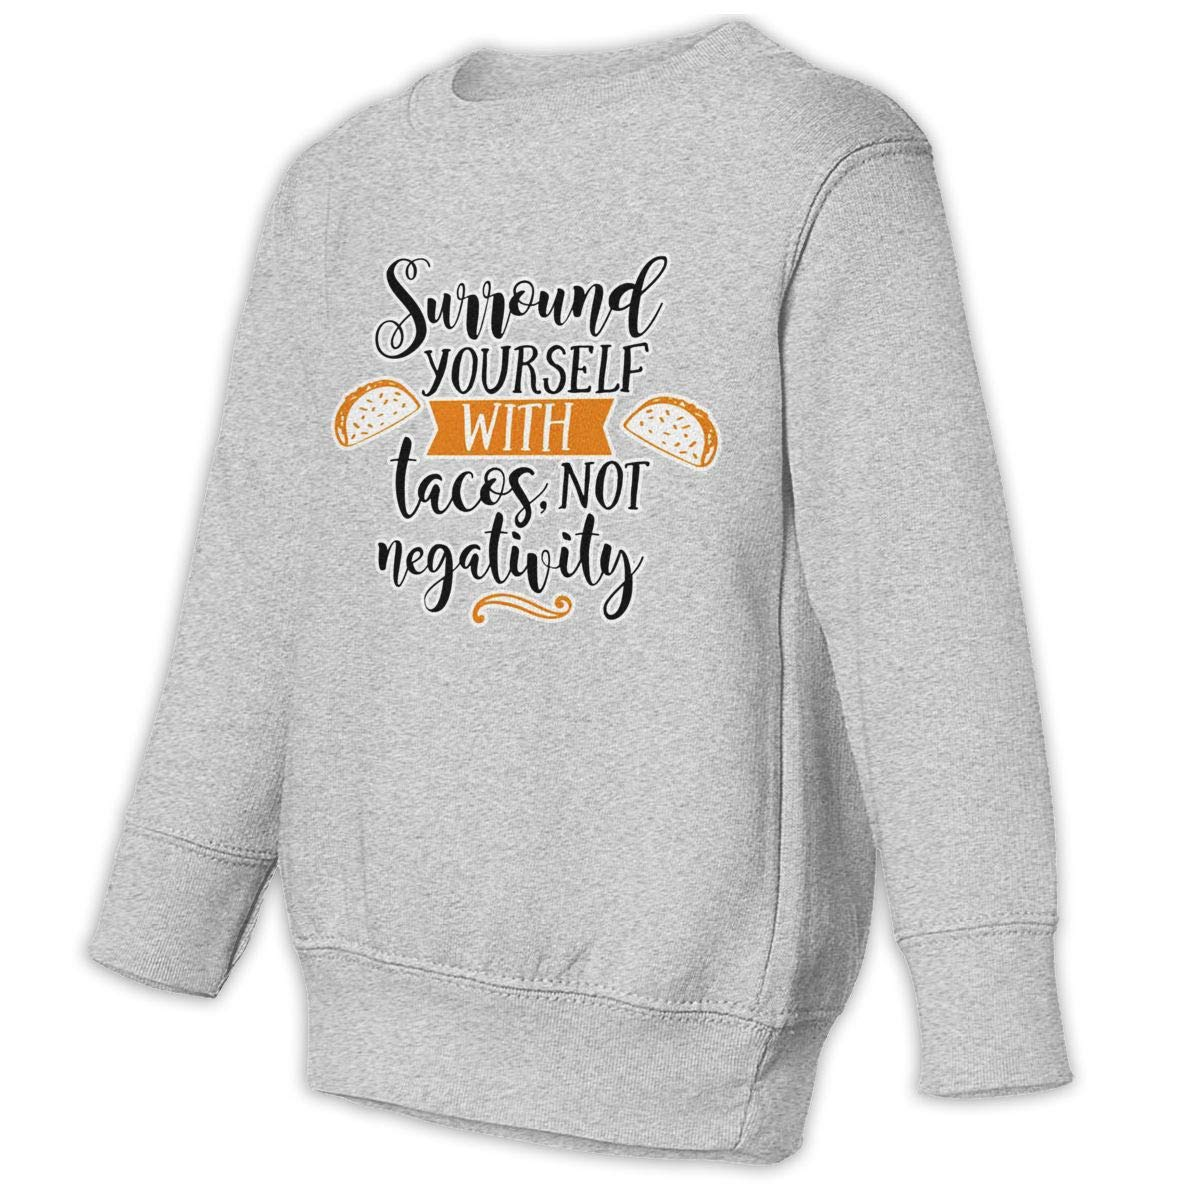 NMDJC CCQ Surround Yourself with Tacos Baby Sweatshirt Adorable Kids Hoodies Cotton T Shirts